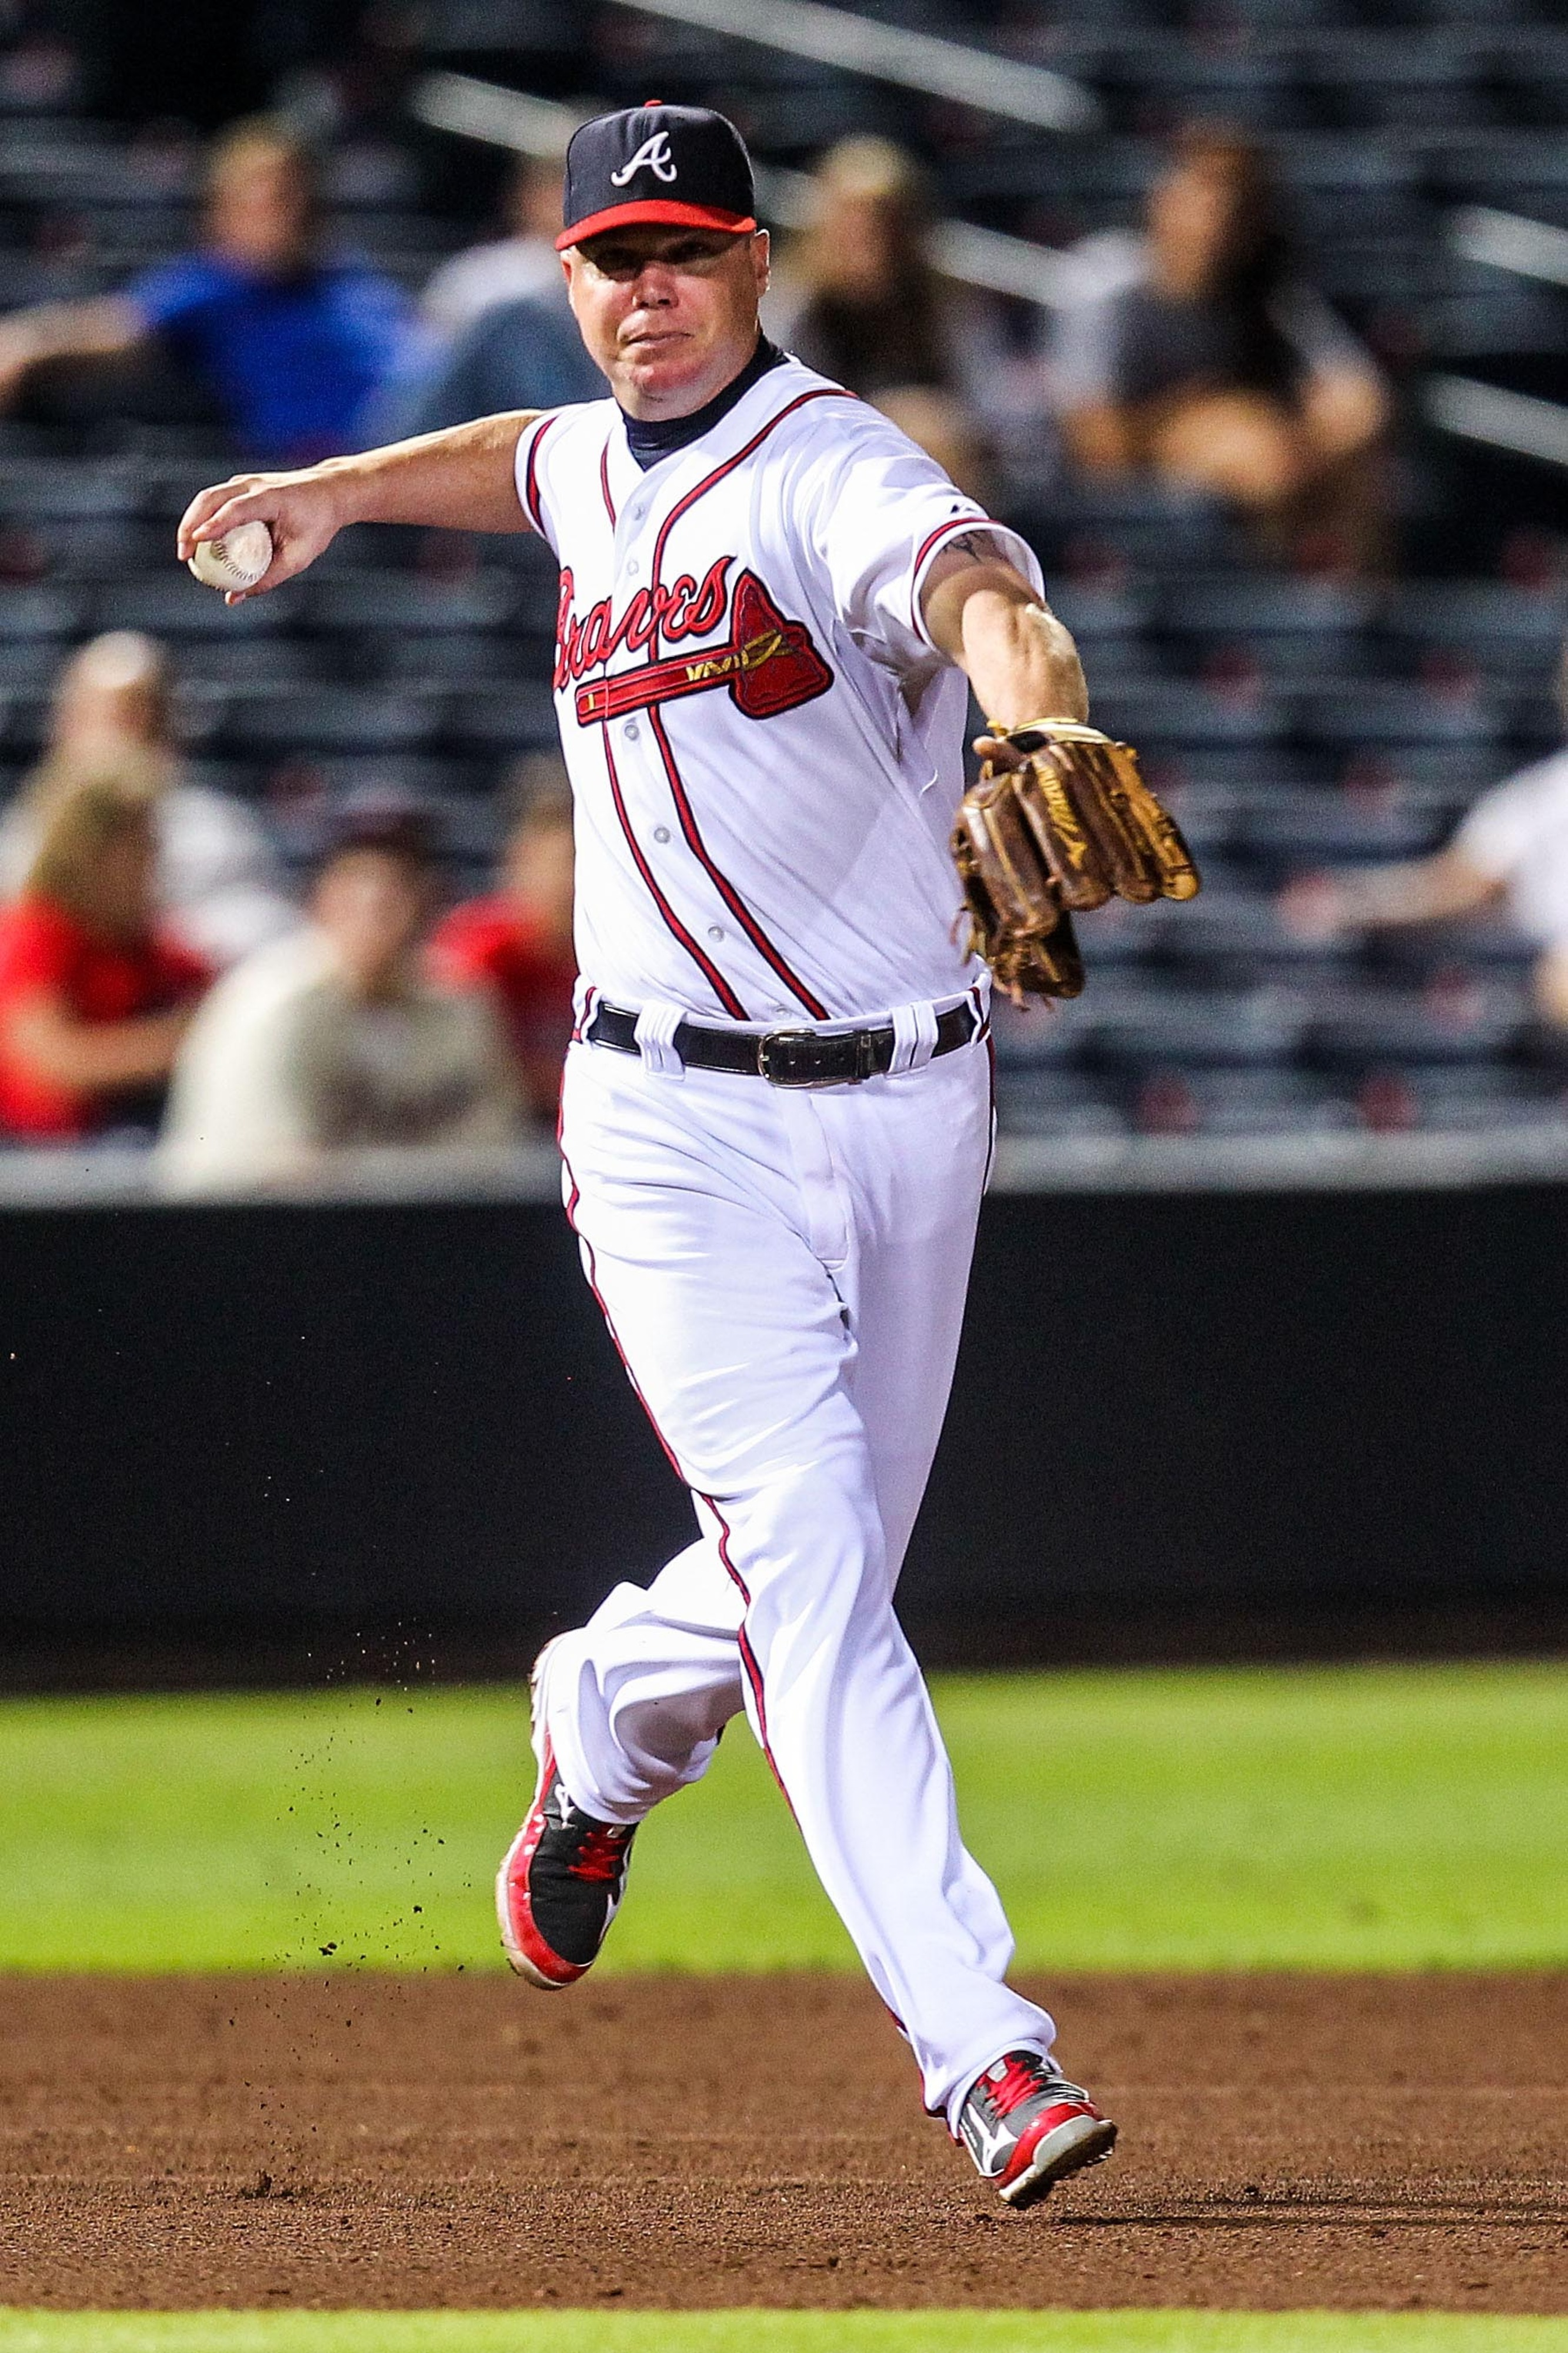 September 4, 2012; Atlanta, GA, USA; Atlanta Braves third baseman Chipper Jones (10) fields a ground ball for an out in the eighth inning against the Colorado Rockies at Turner Field. Mandatory Credit: Daniel Shirey-US PRESSWIRE